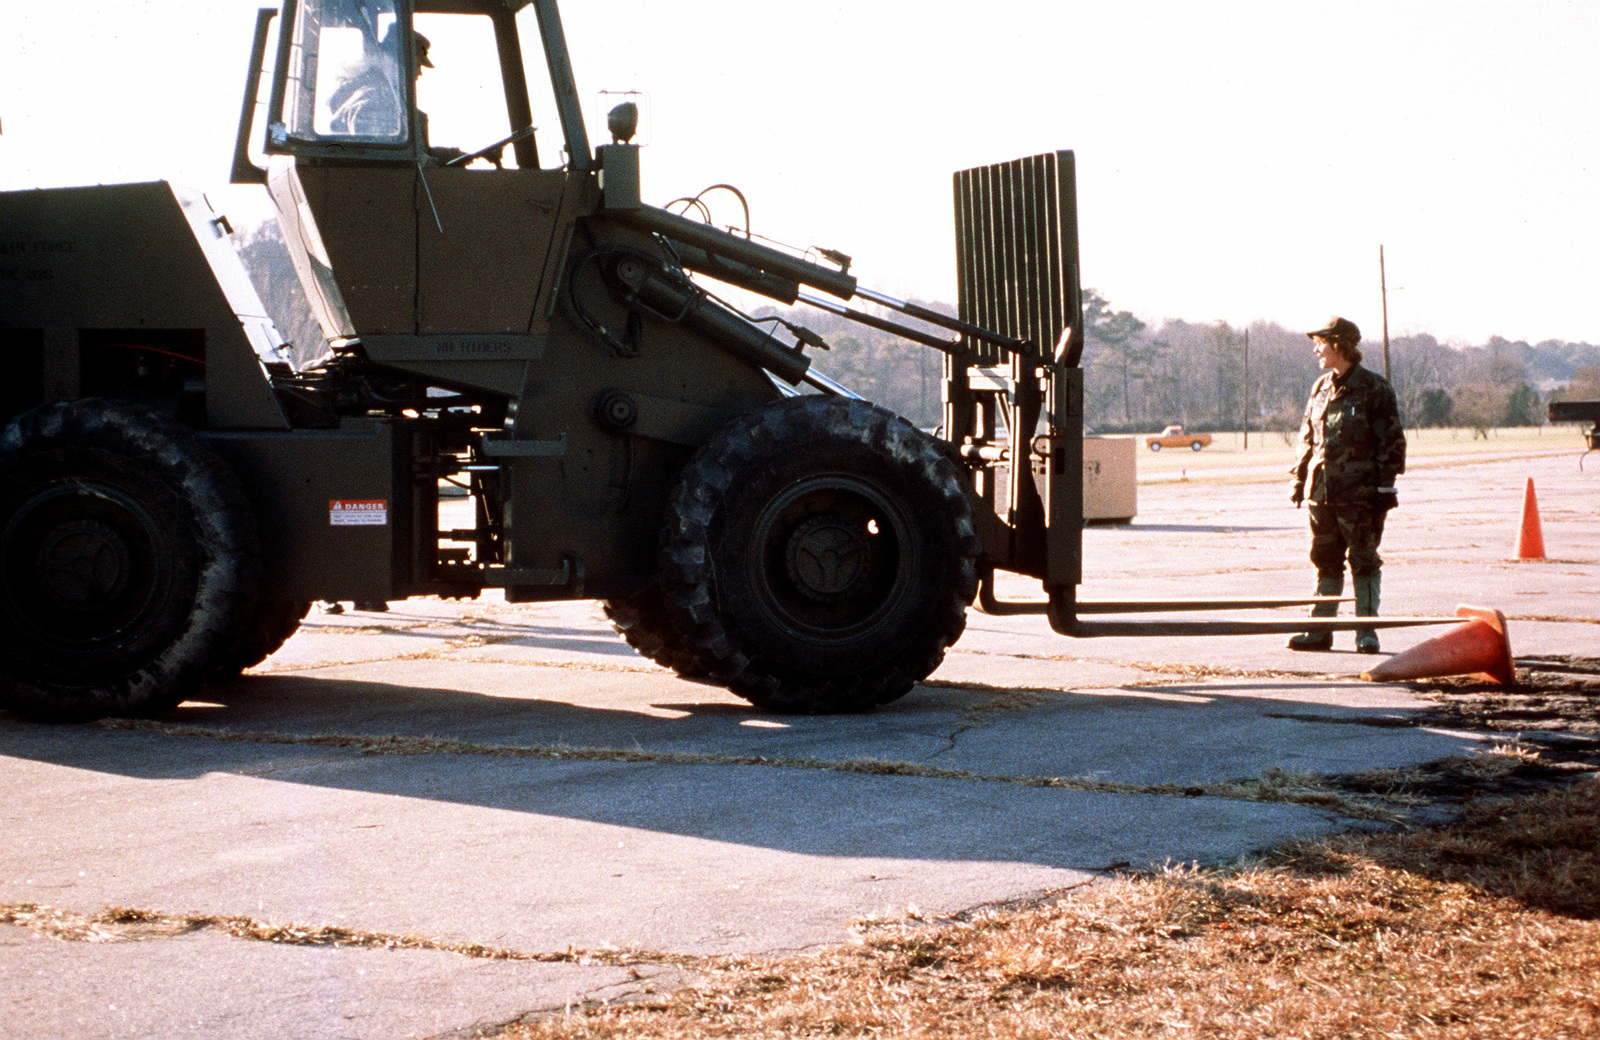 Members of the 11th Civil Engineer Squadron from Bolling Air Force Base, Washington, DC learn to operate a forklift in an open field